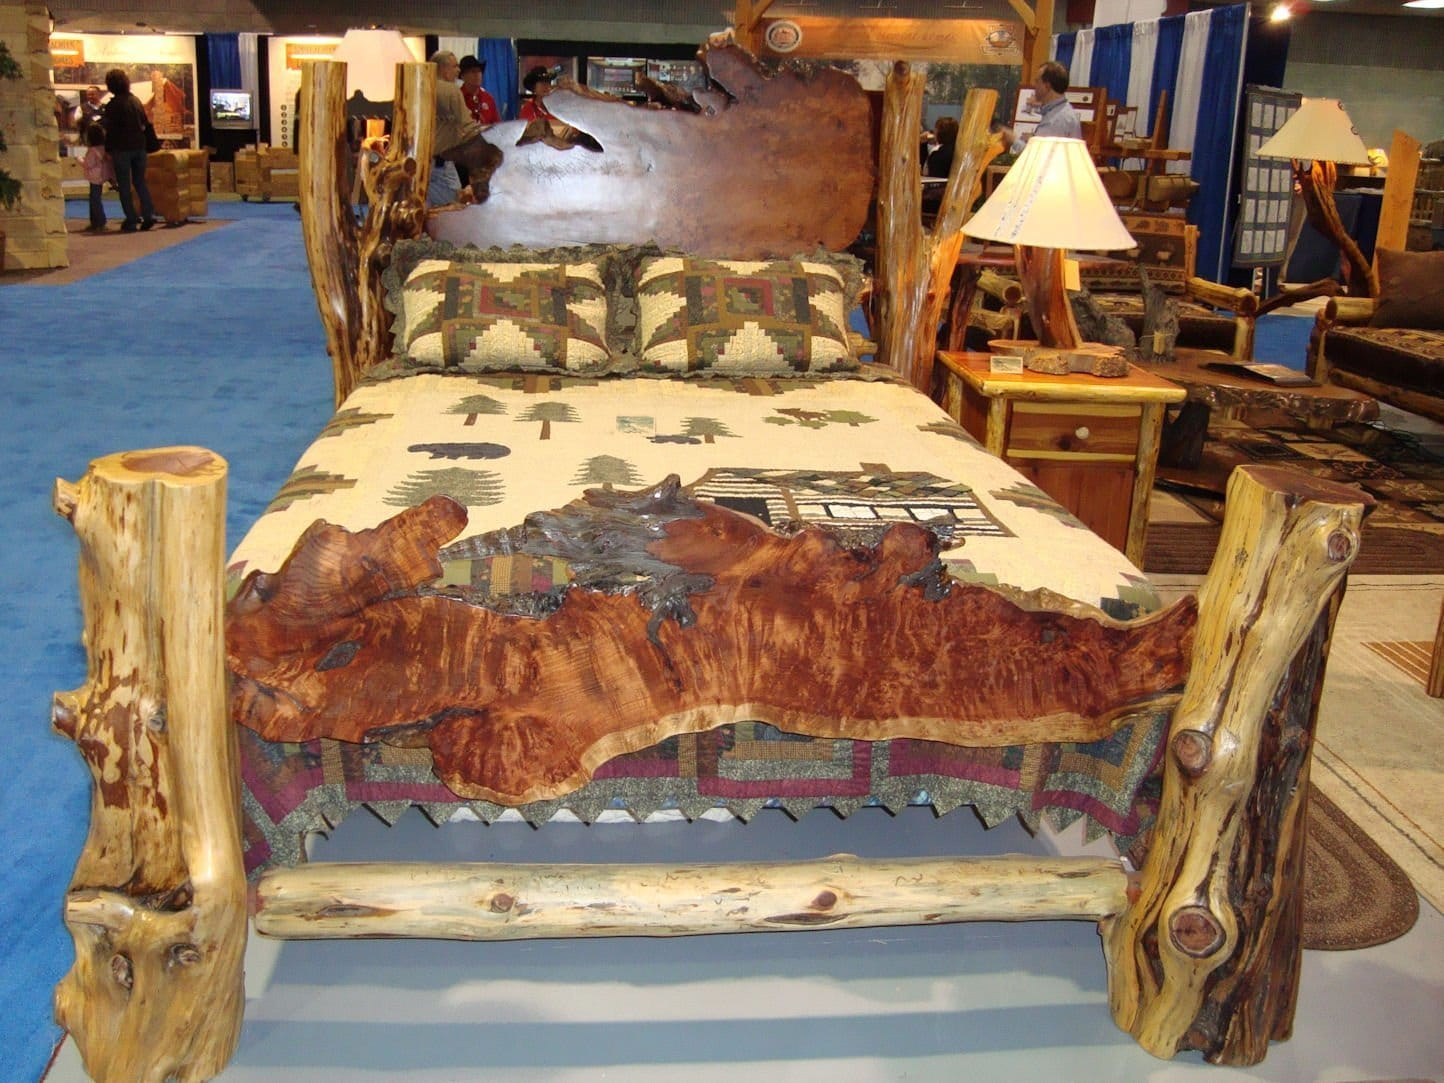 Rustic Beds live edge burl wood slab bed : redwood burl and cedar log bed from littlebranchfarm.com size 1444 x 1083 jpeg 377kB